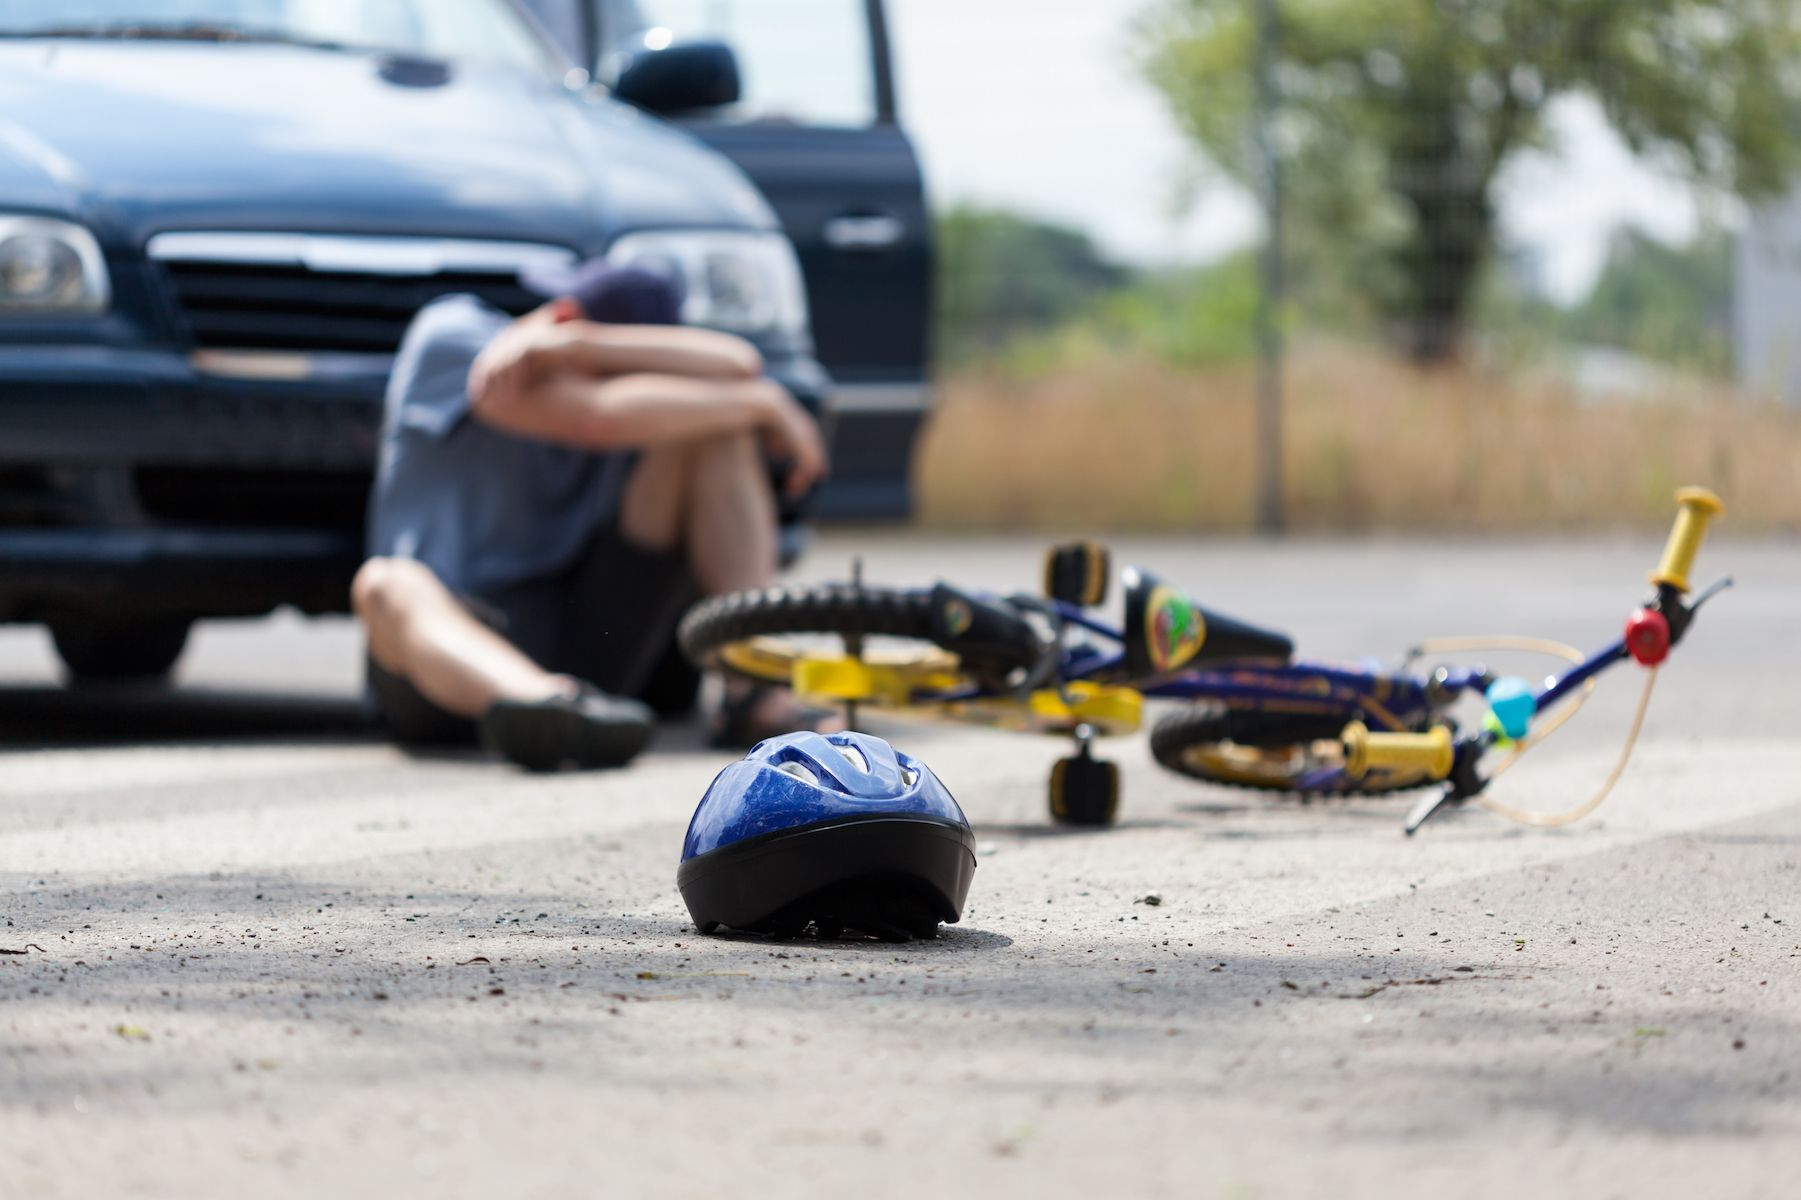 Bike Accident Injured Call Us Now For Free Advice Toll Free 833